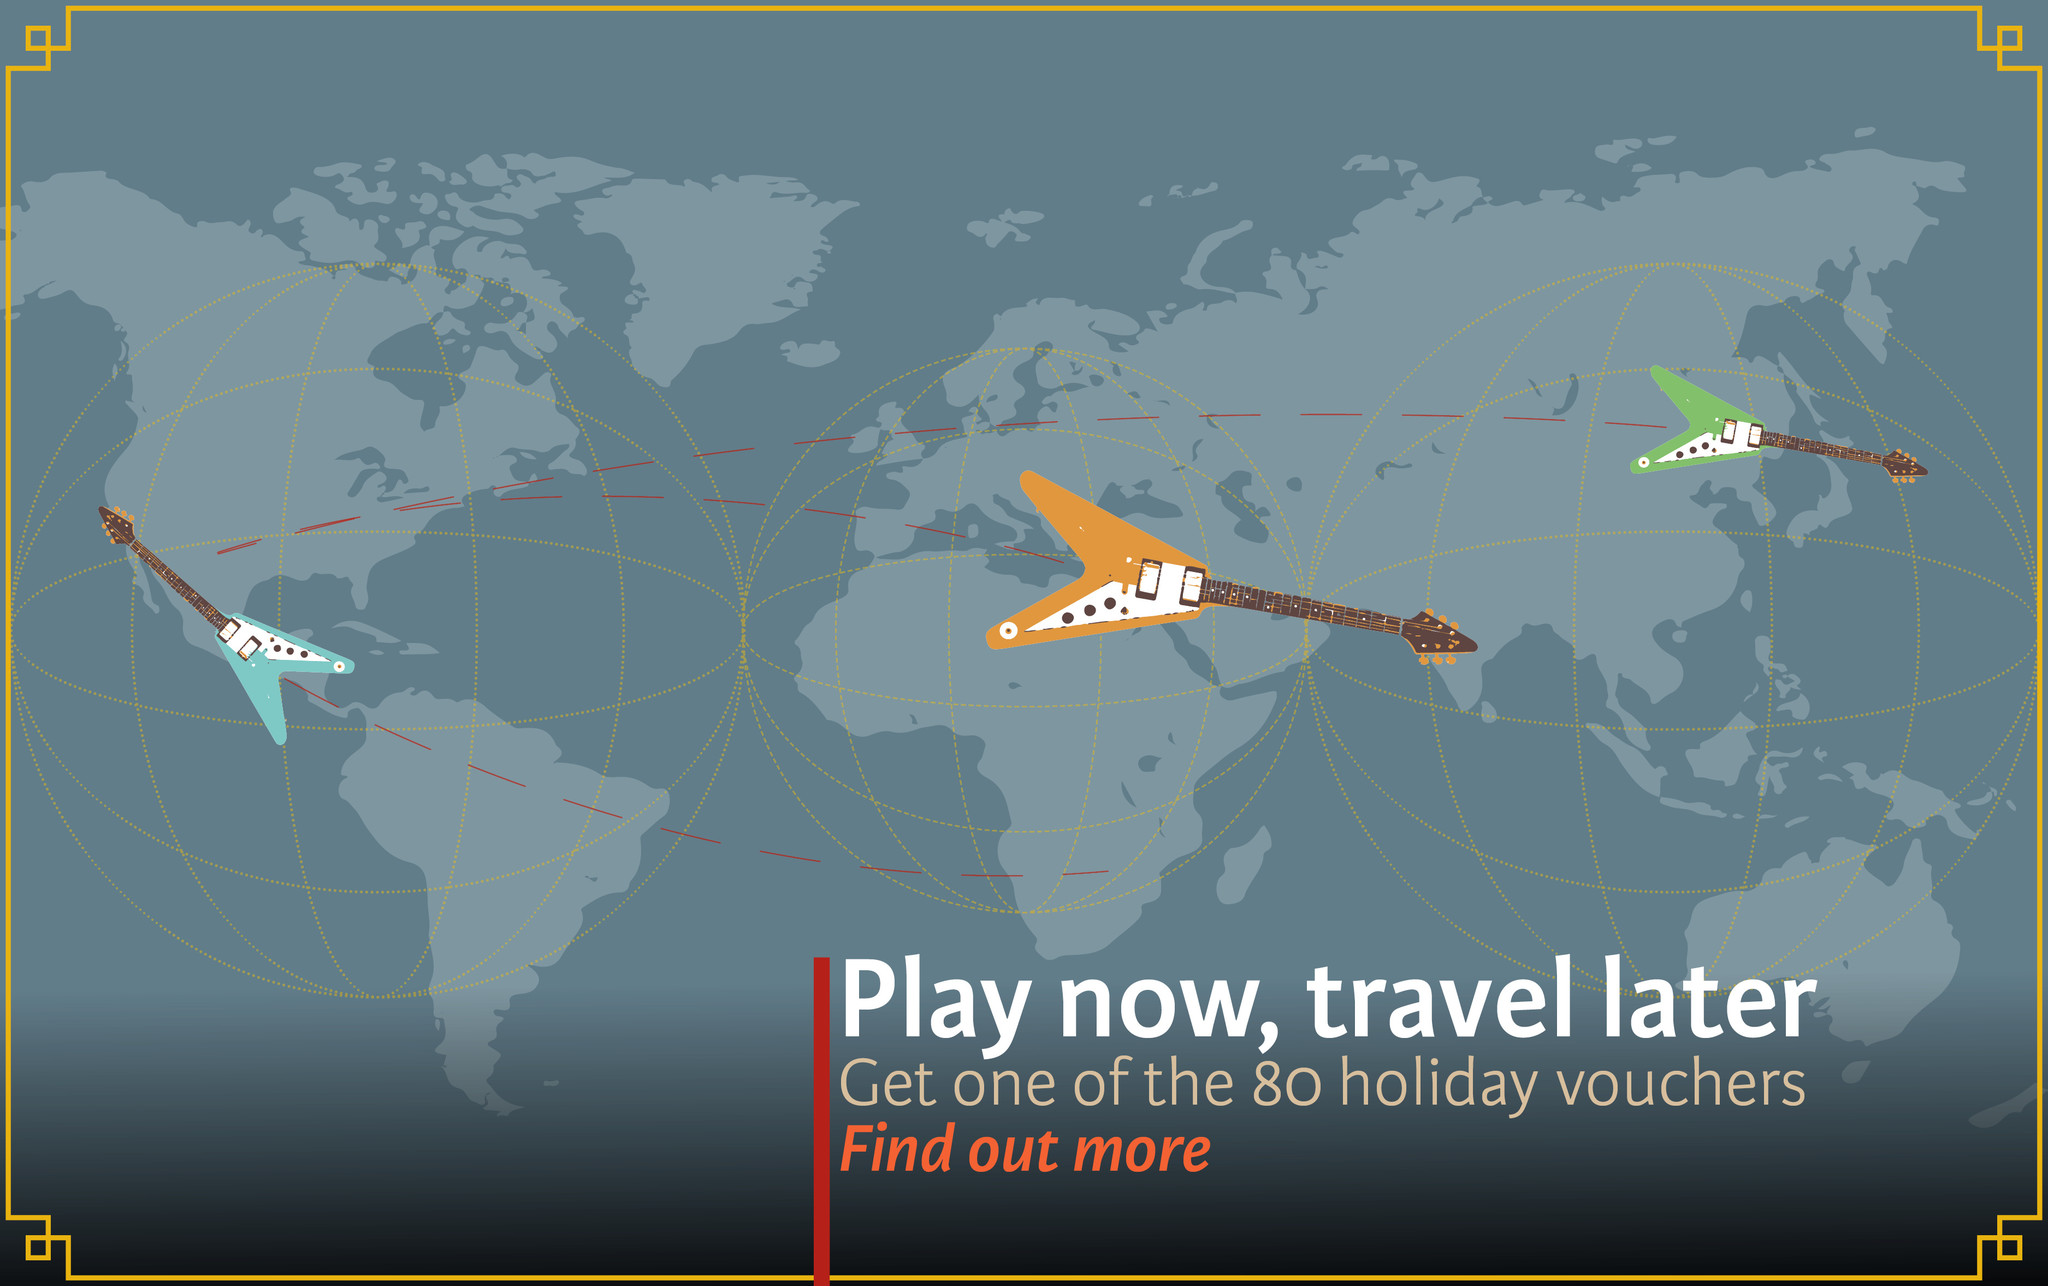 Play Now, Travel Later! Gratis Vakantie Vouchers bij TFOA!